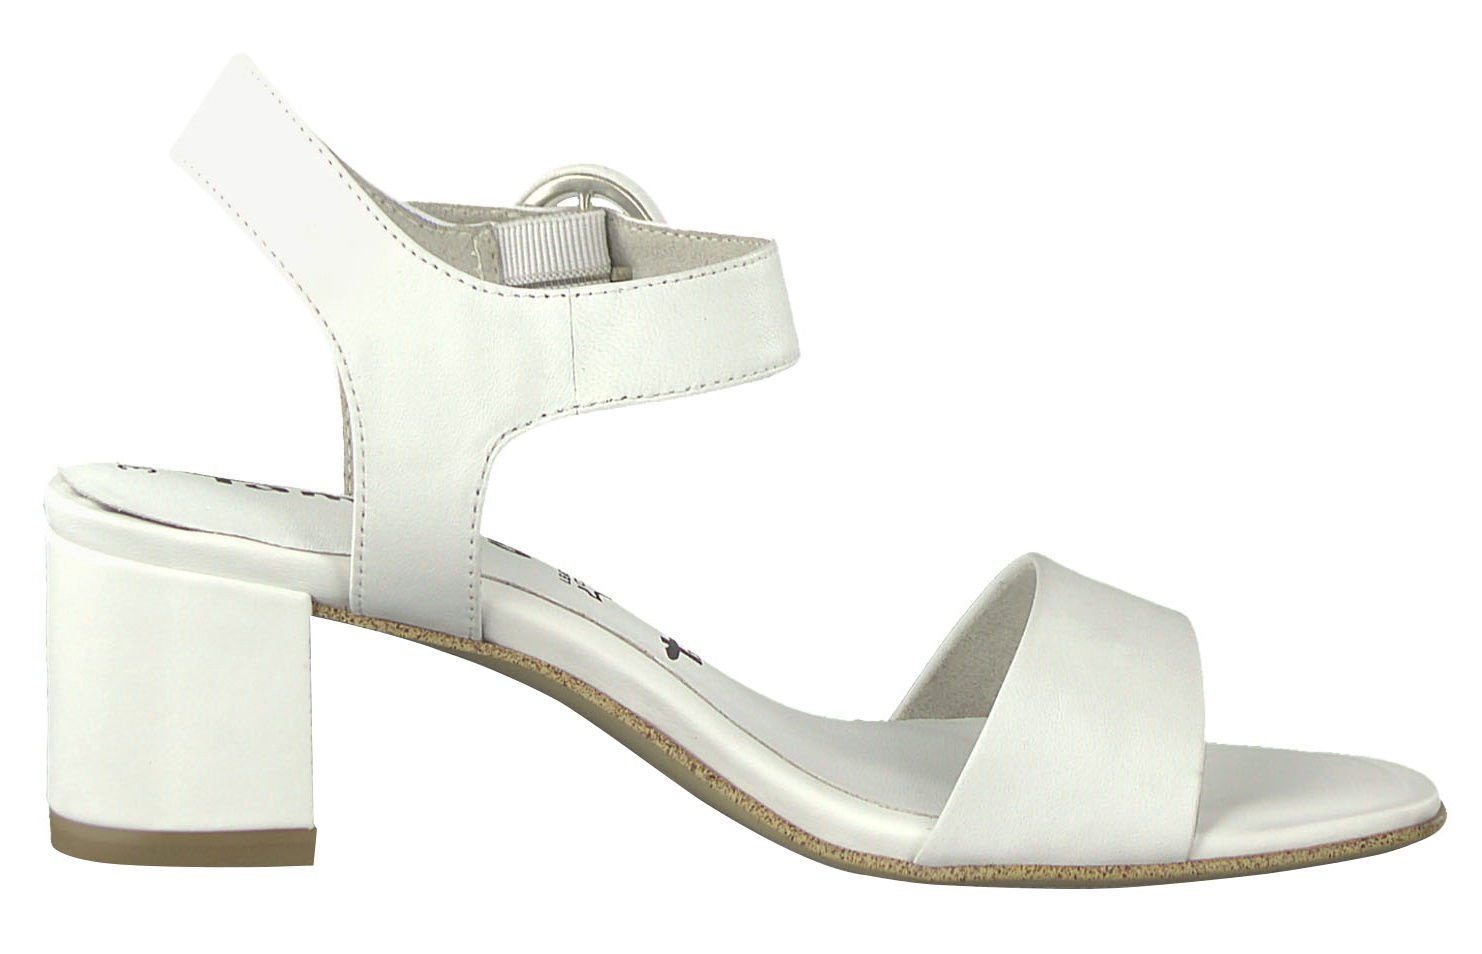 Tamaris Scola Healed Sandal 1 1 28342 22 White Leather 37